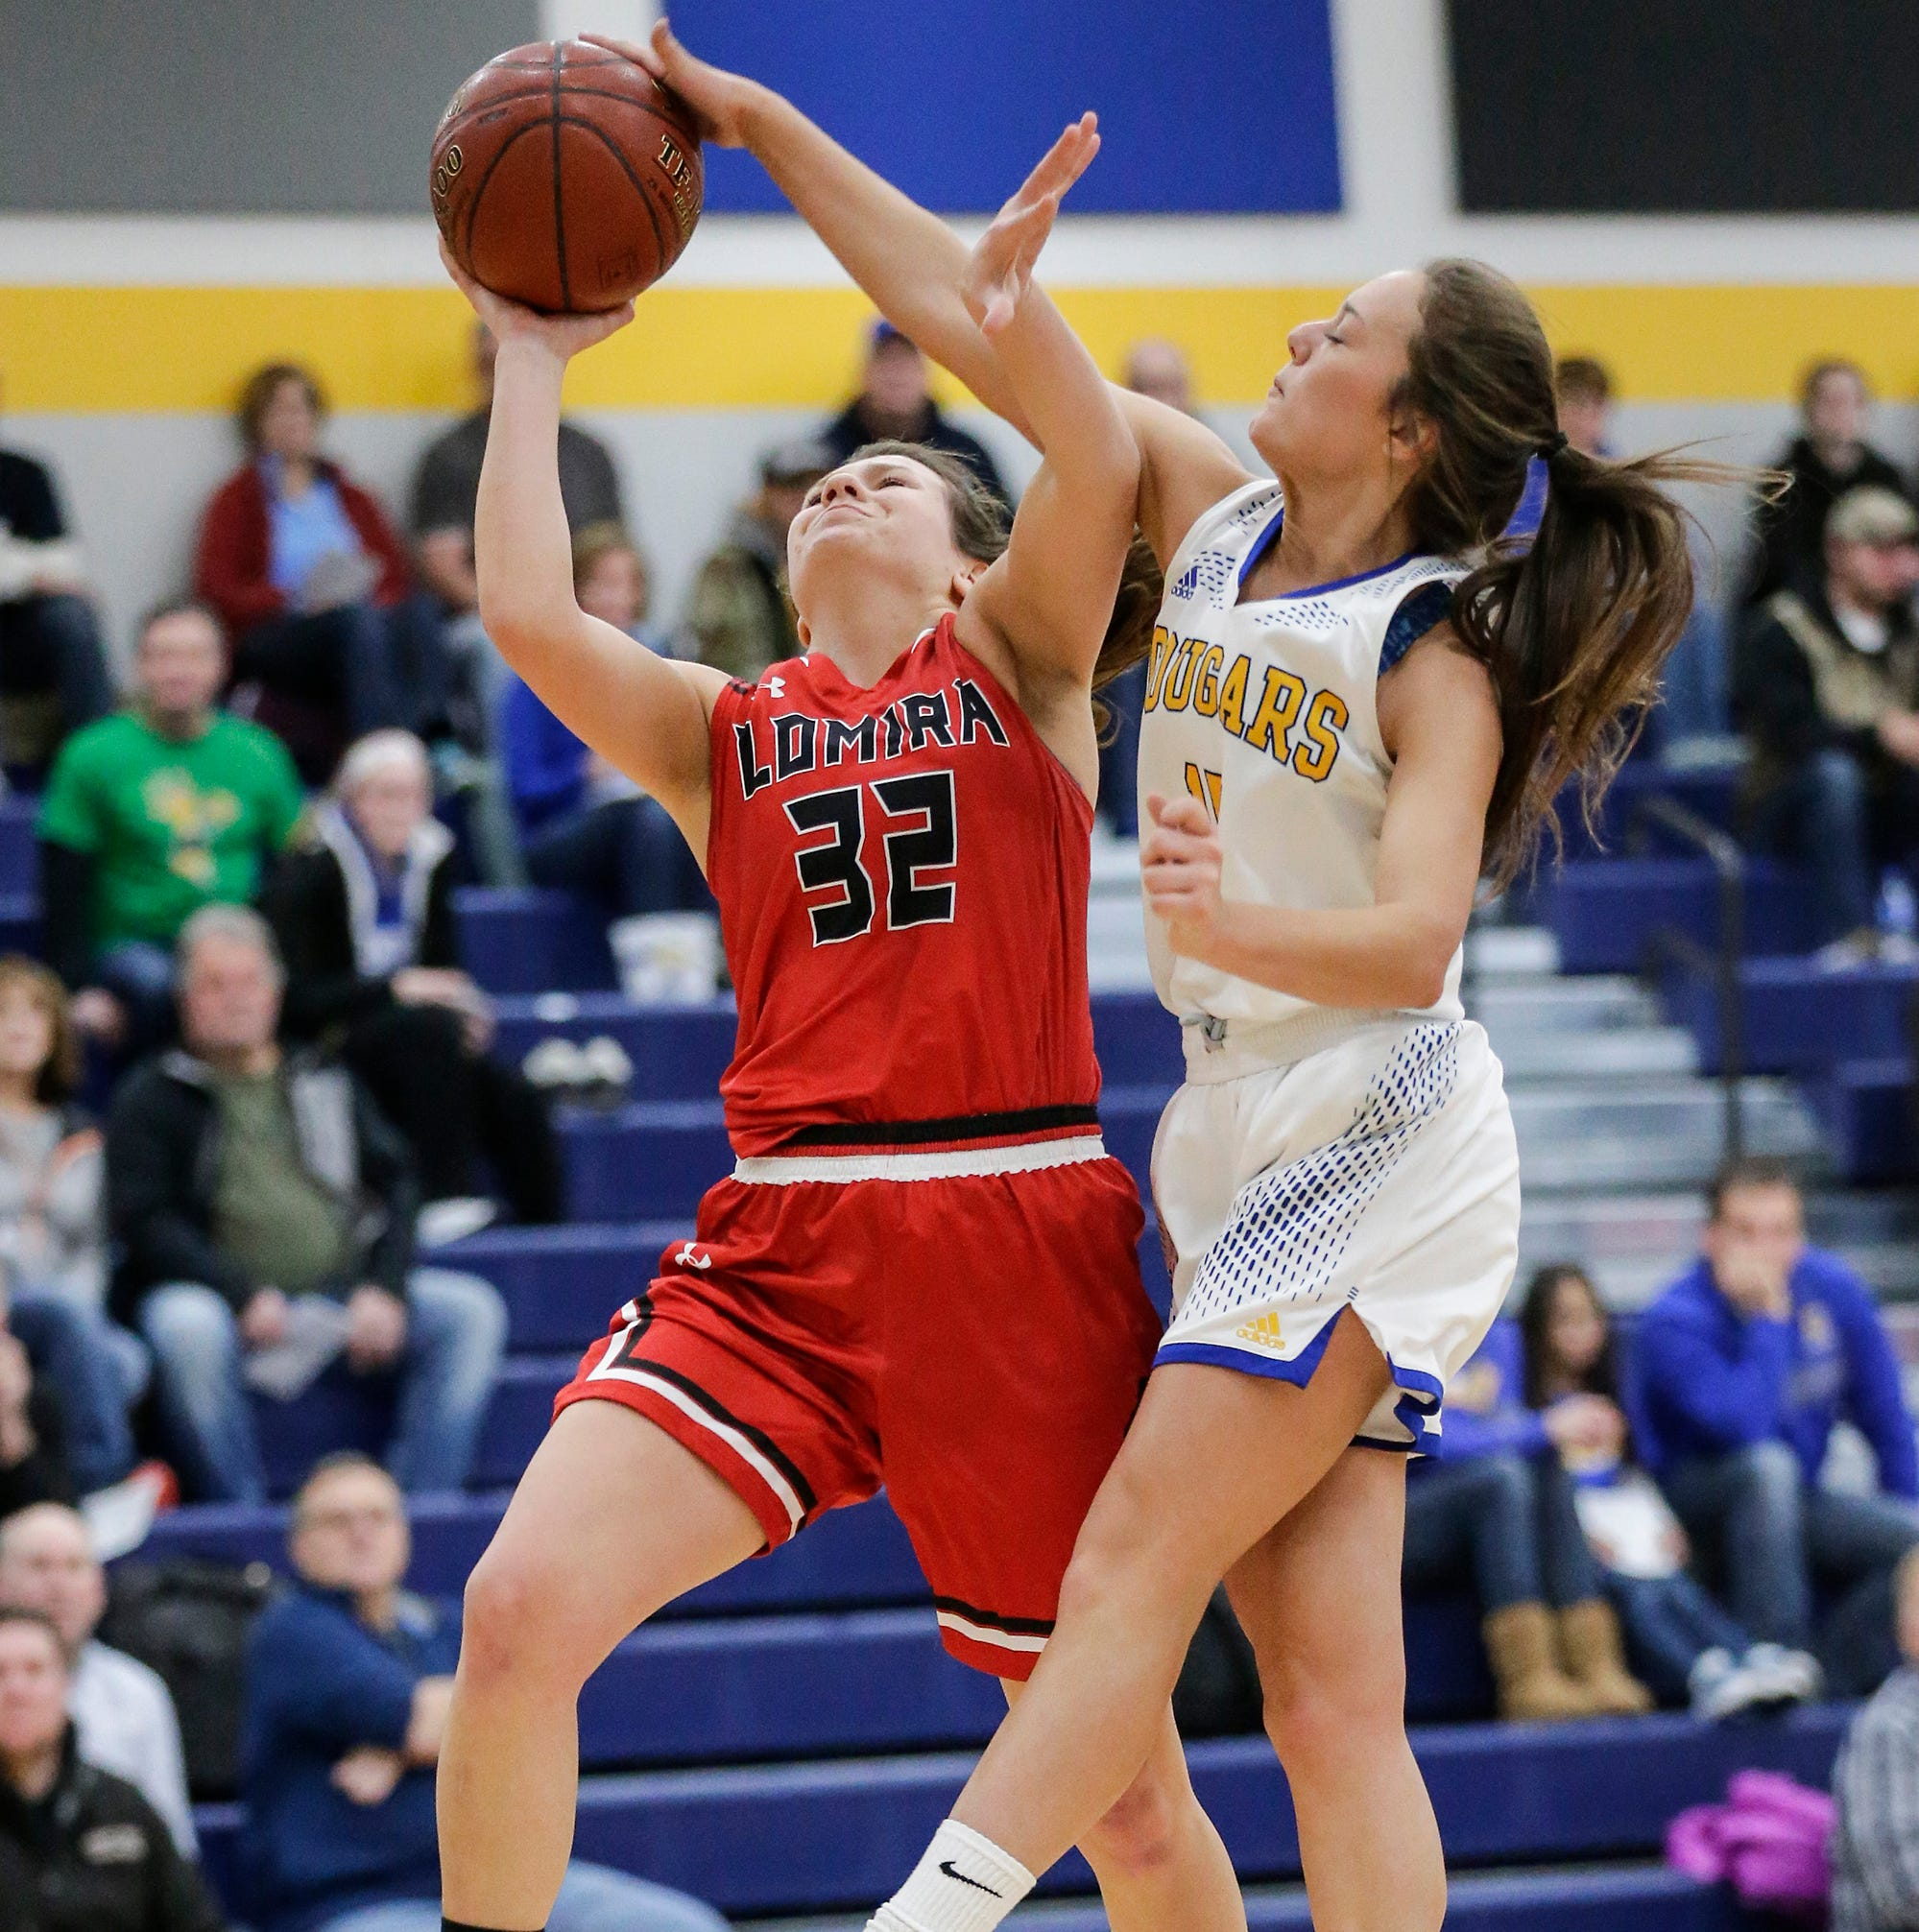 High school basketball: Holiday tournaments brings success for Fond du Lac area teams